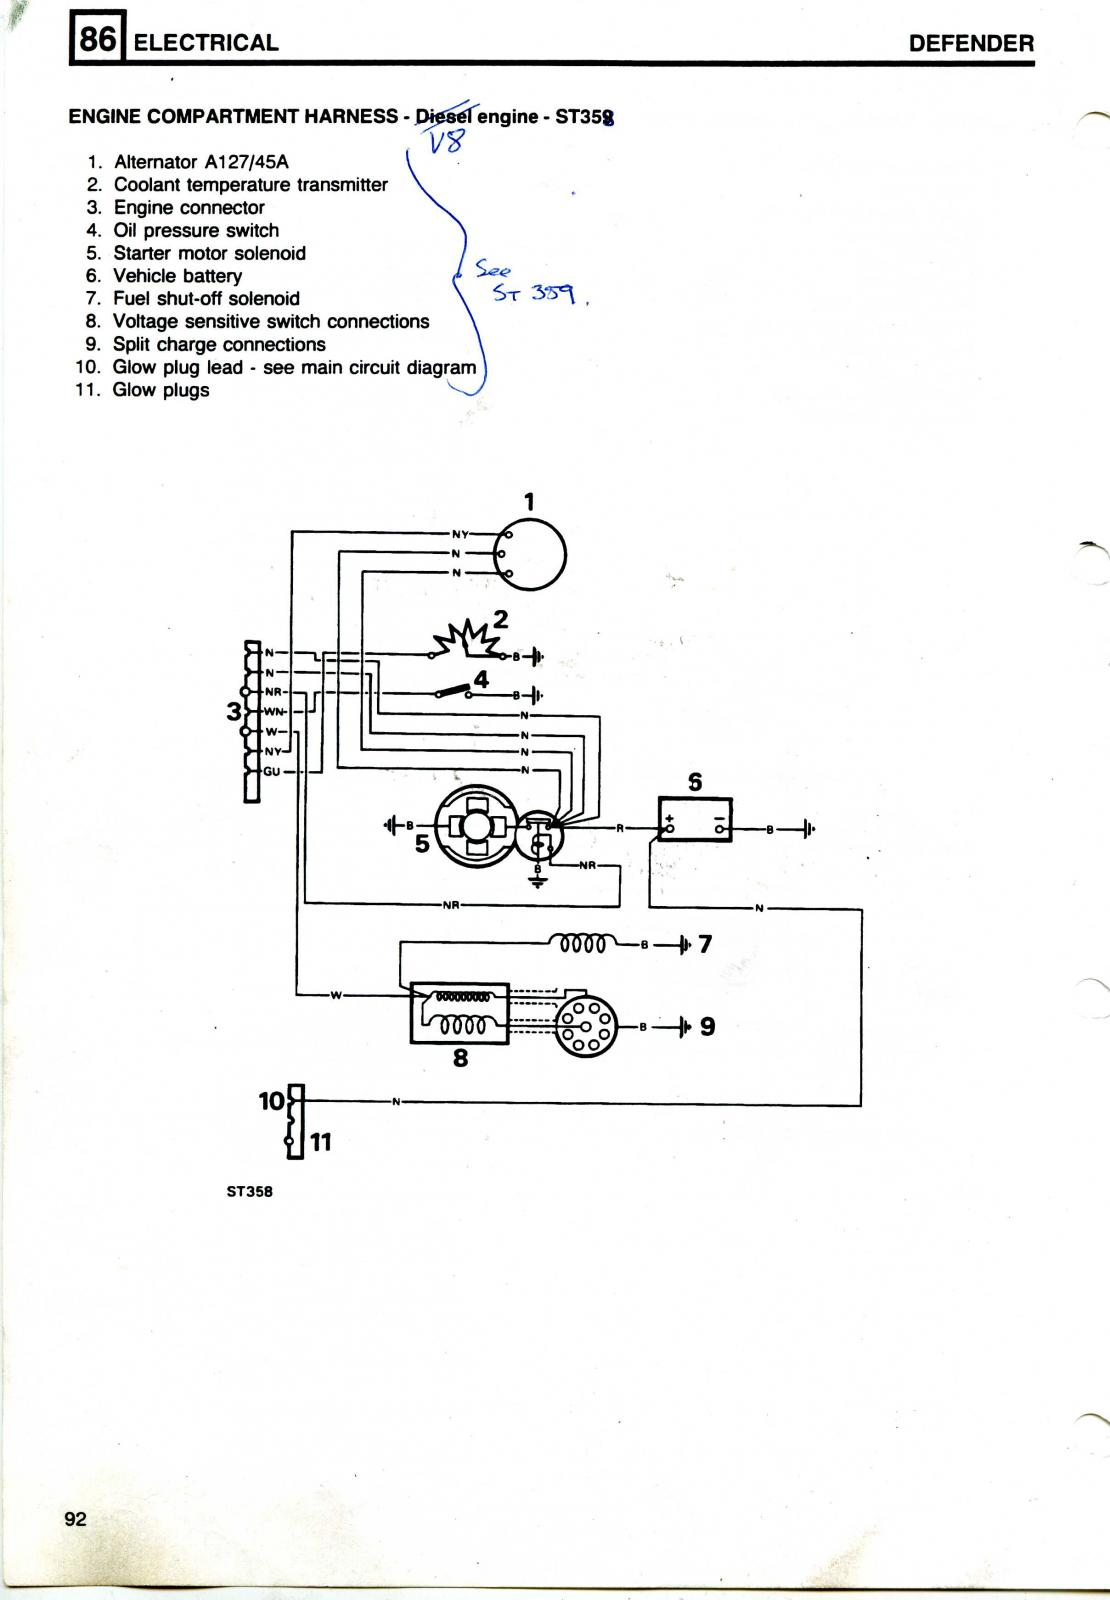 Wiring Diagram Rover V8 Distributor - Wiring Diagram Bookmark on